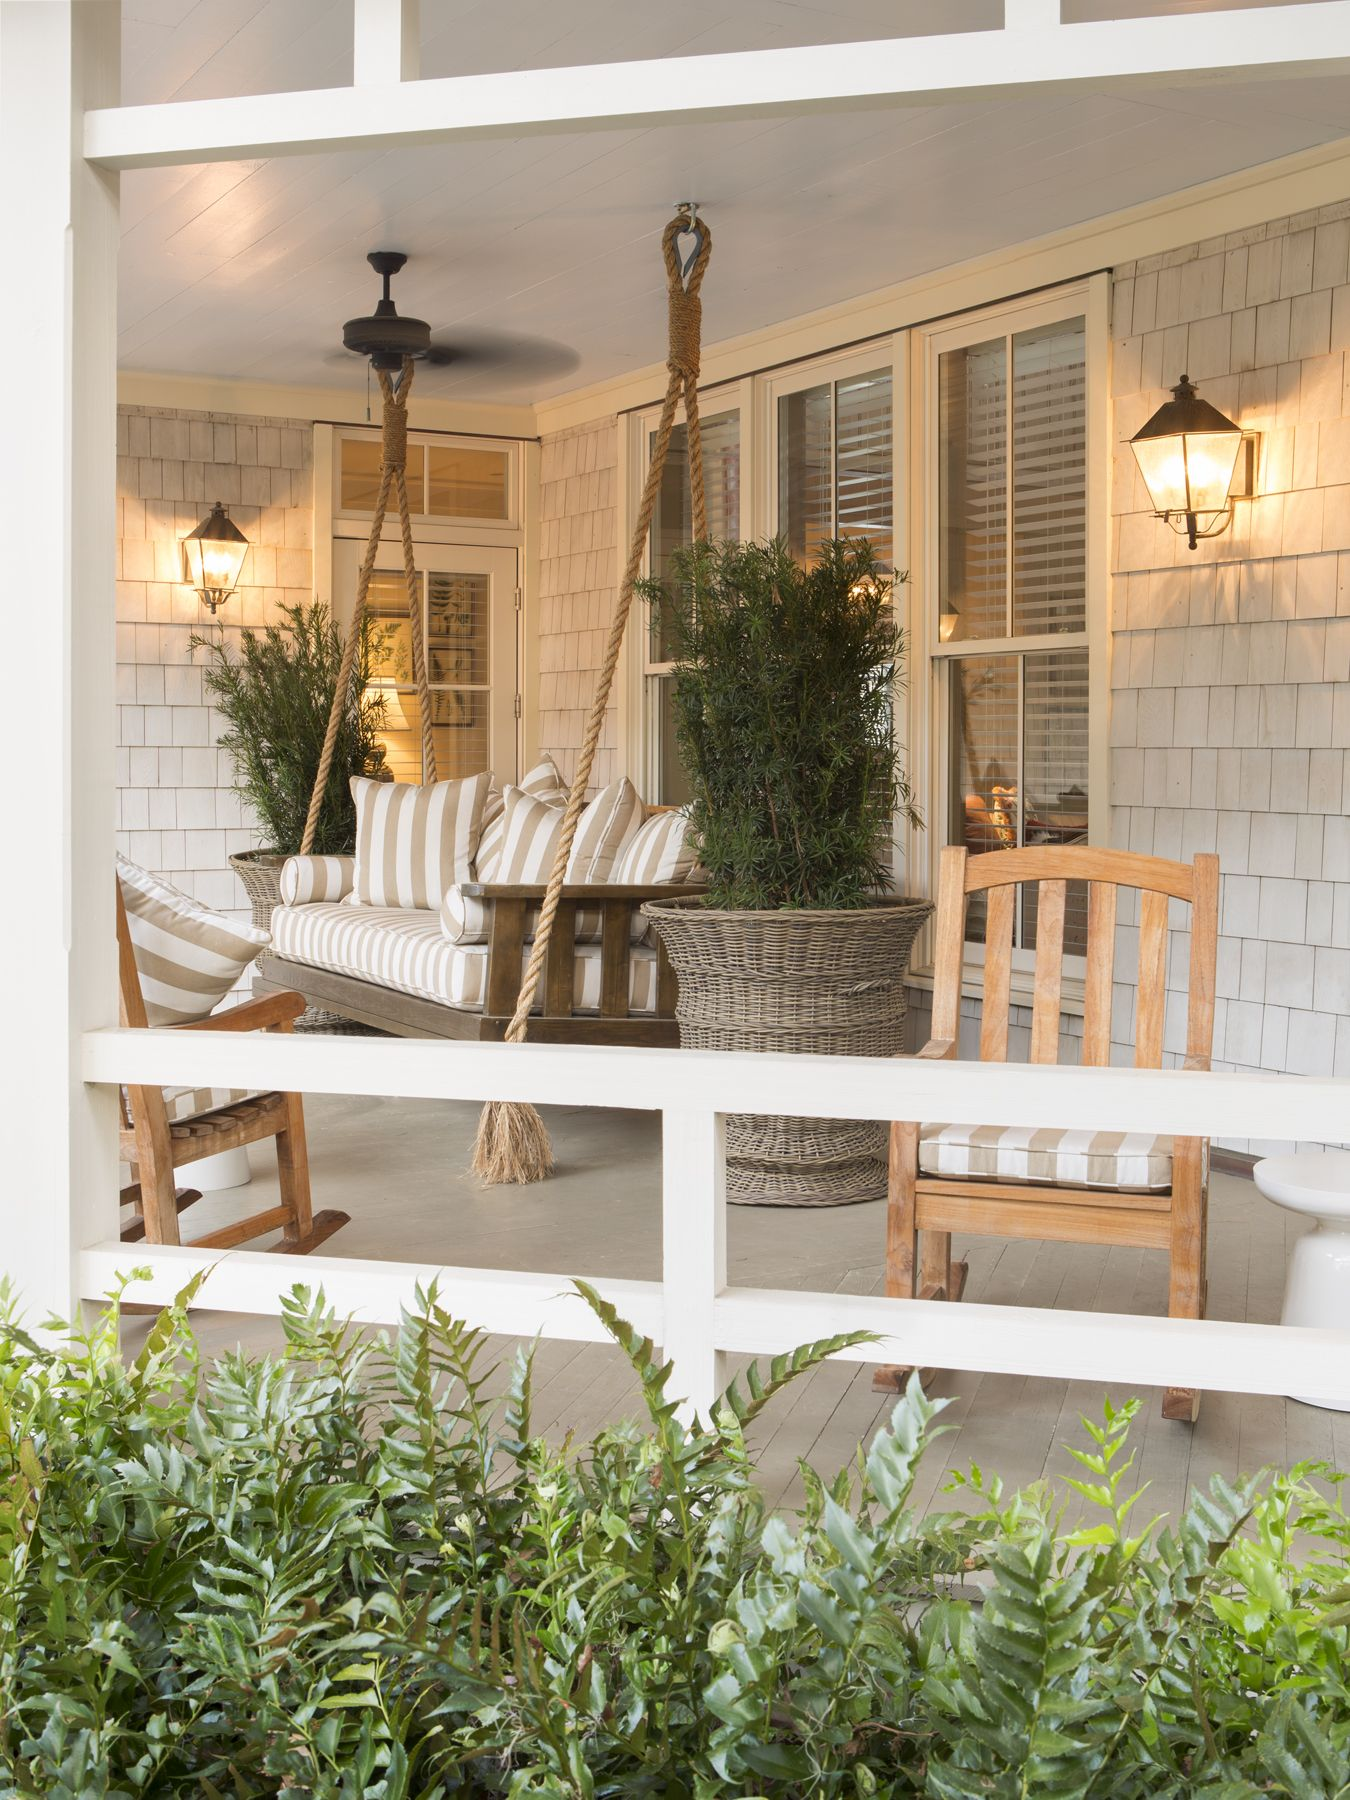 Porch Swing Tall Planters Wall Sconses Rebecca